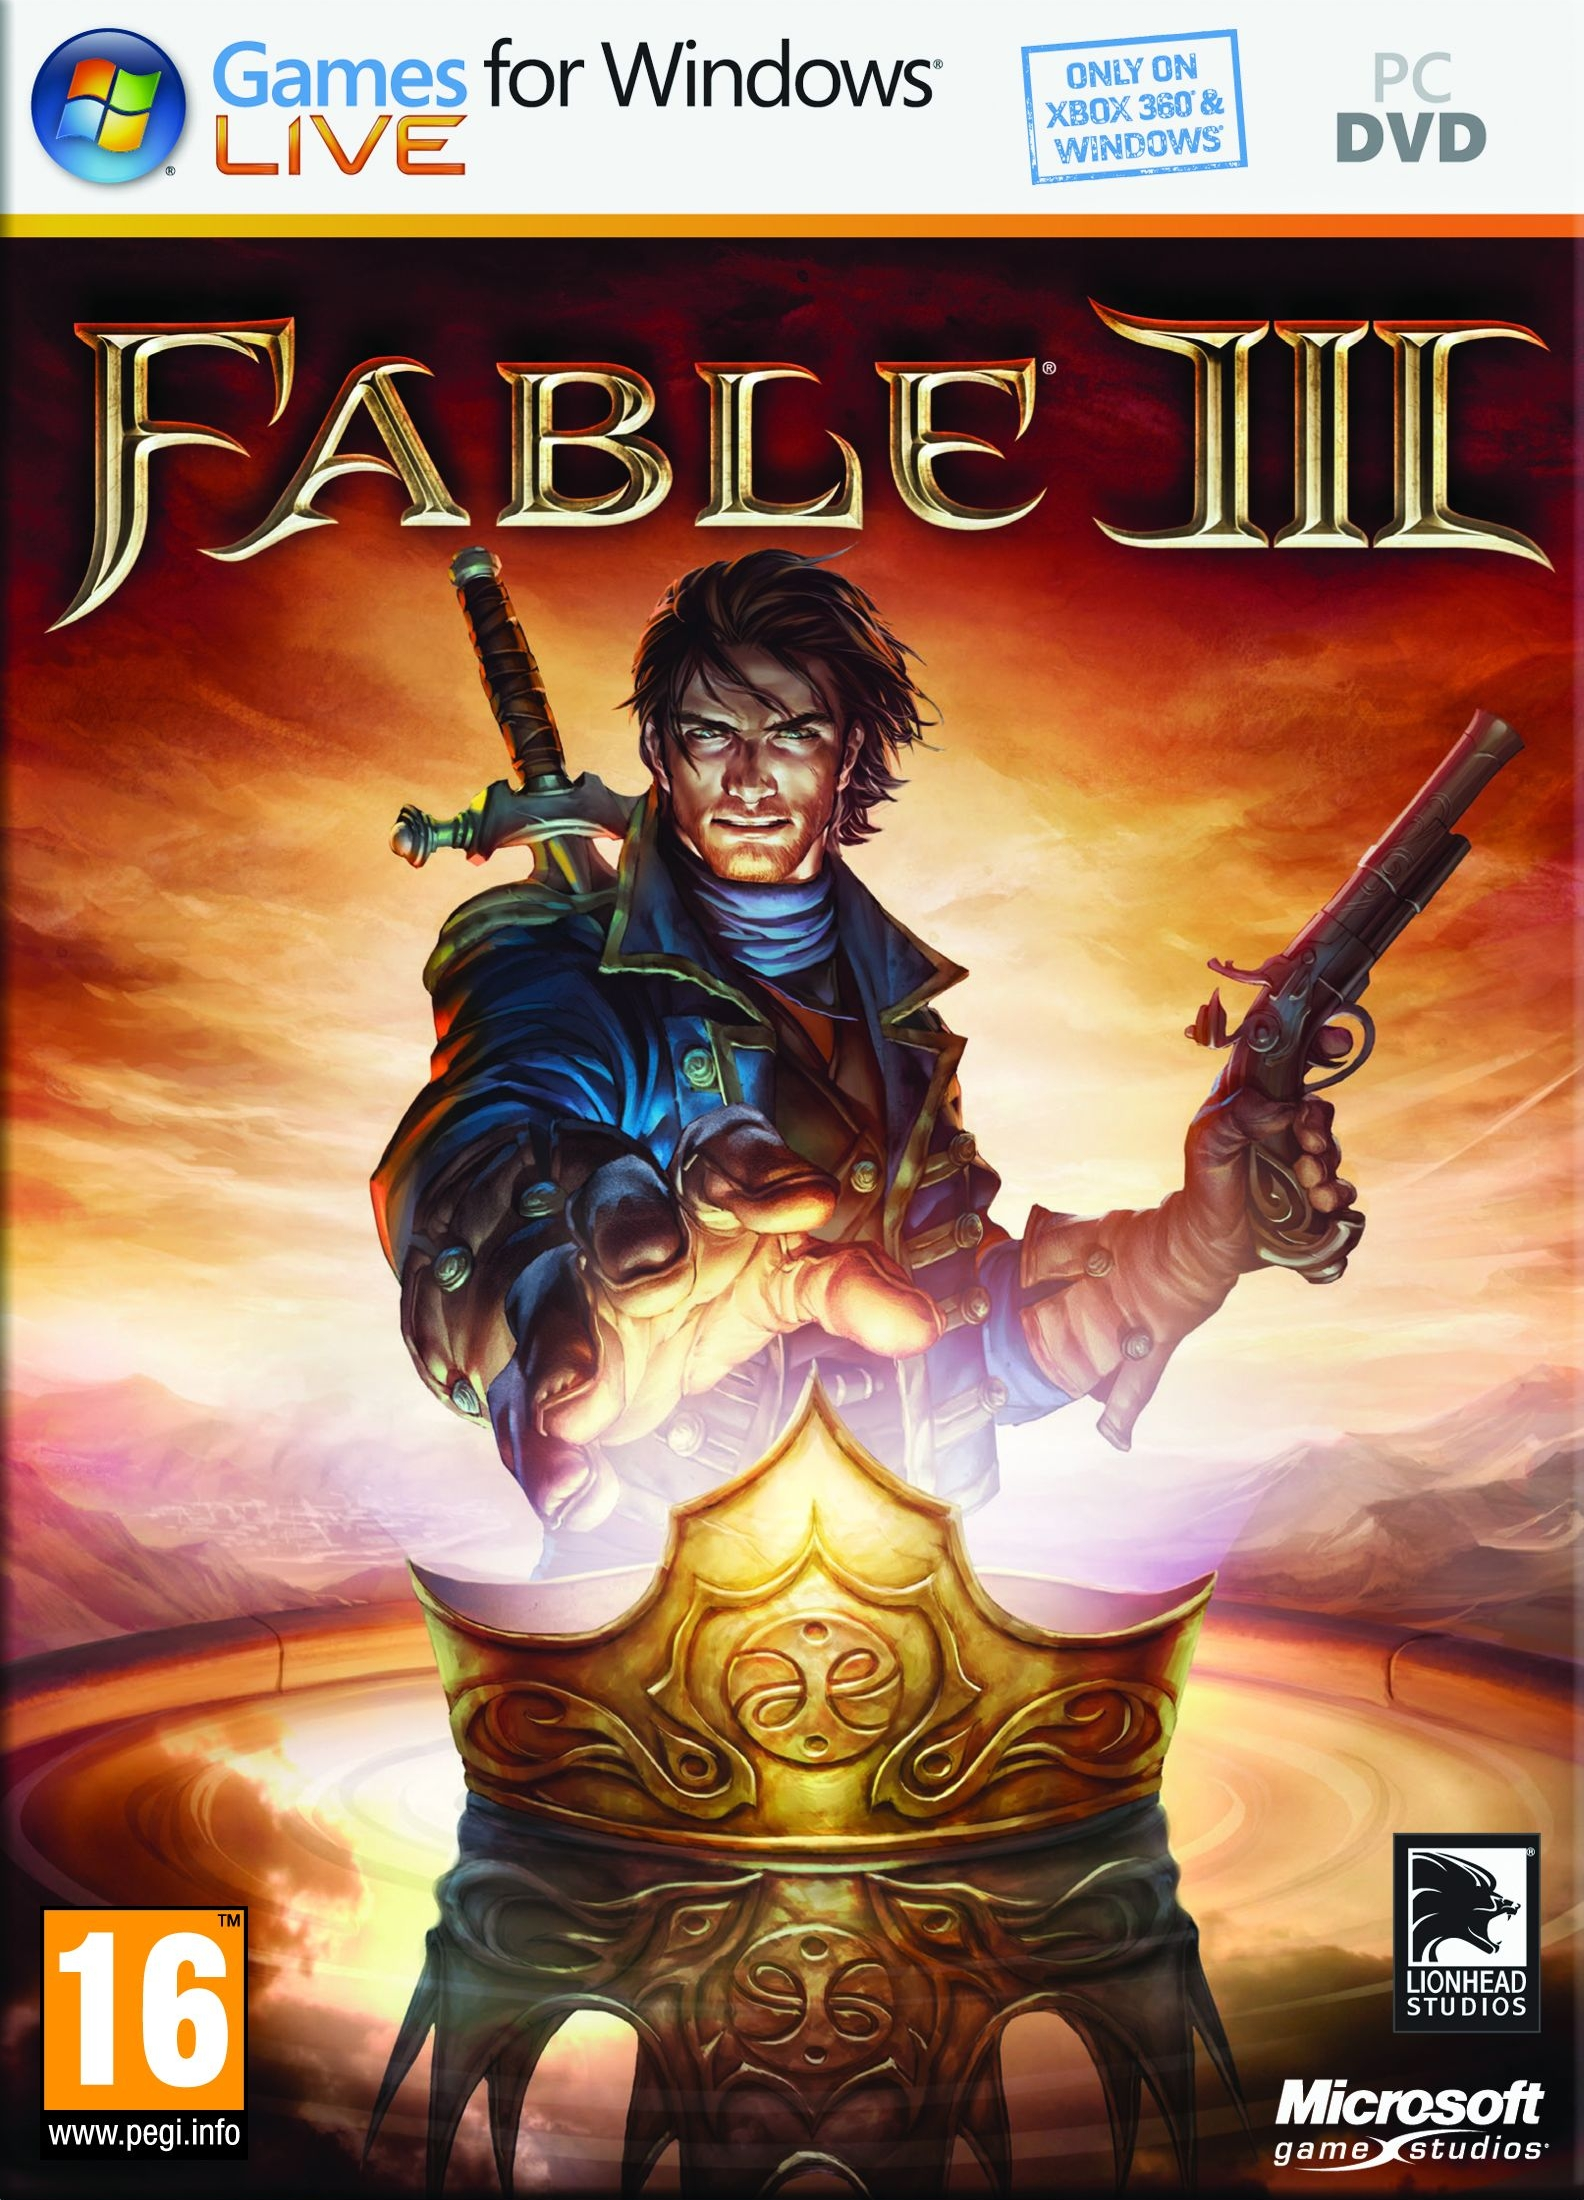 fable the lost chapters серебряные ключи: